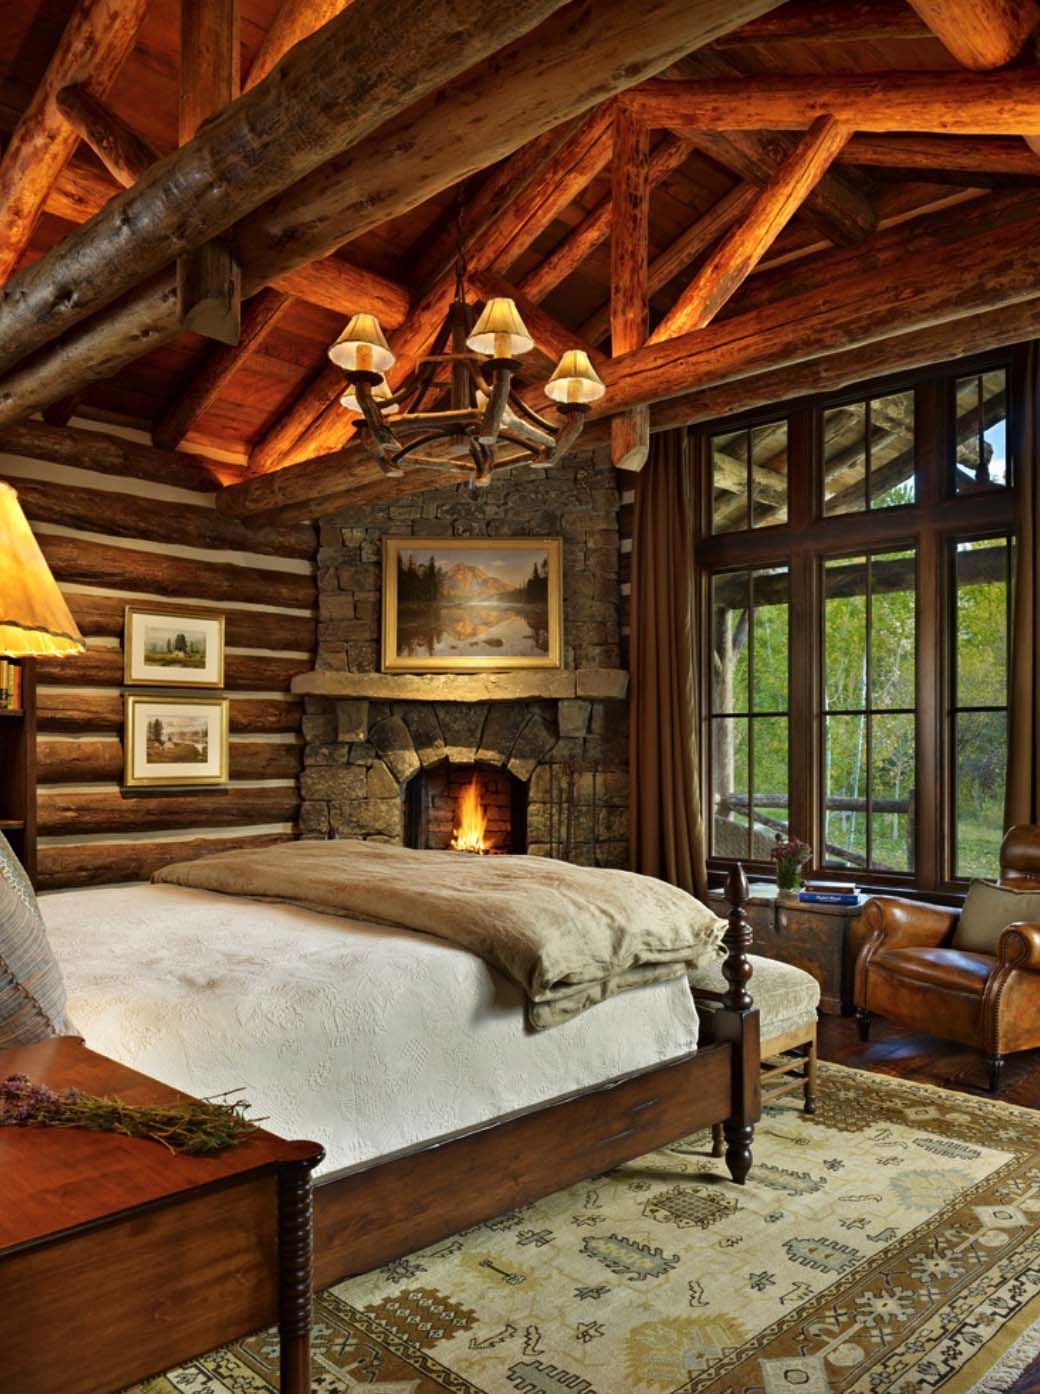 35 Gorgeous Log Cabin Style Bedrooms To Make You Drool Log Home Bedroom Cabin Interior Design Log Cabin Interior